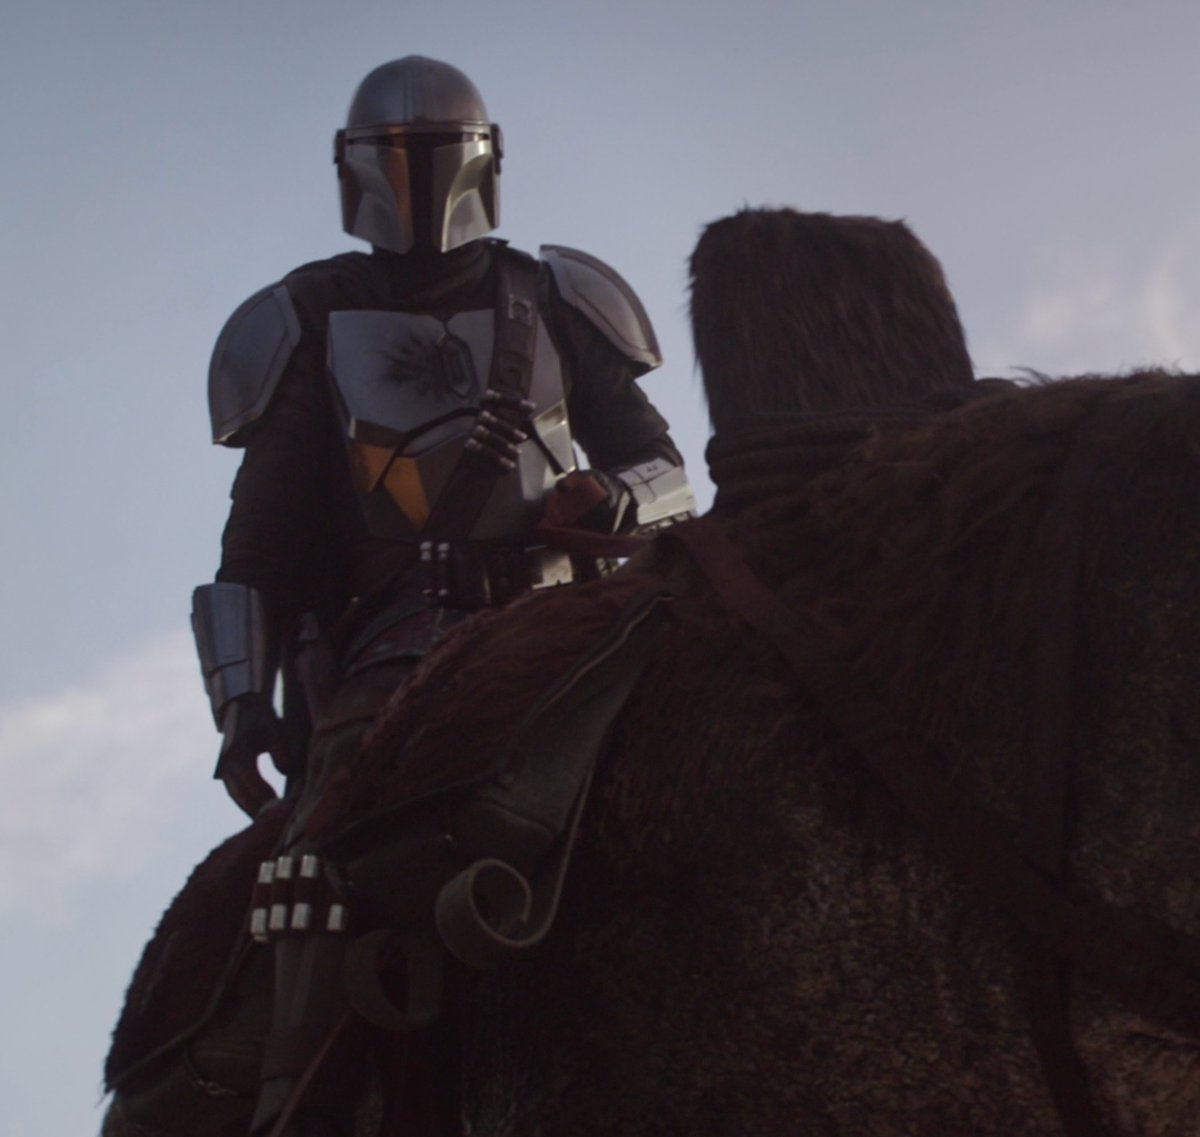 "Replying to @themandalorian: ""Your name will be legendary."" #TheMandalorian Chapter 5, now streaming on #DisneyPlus."